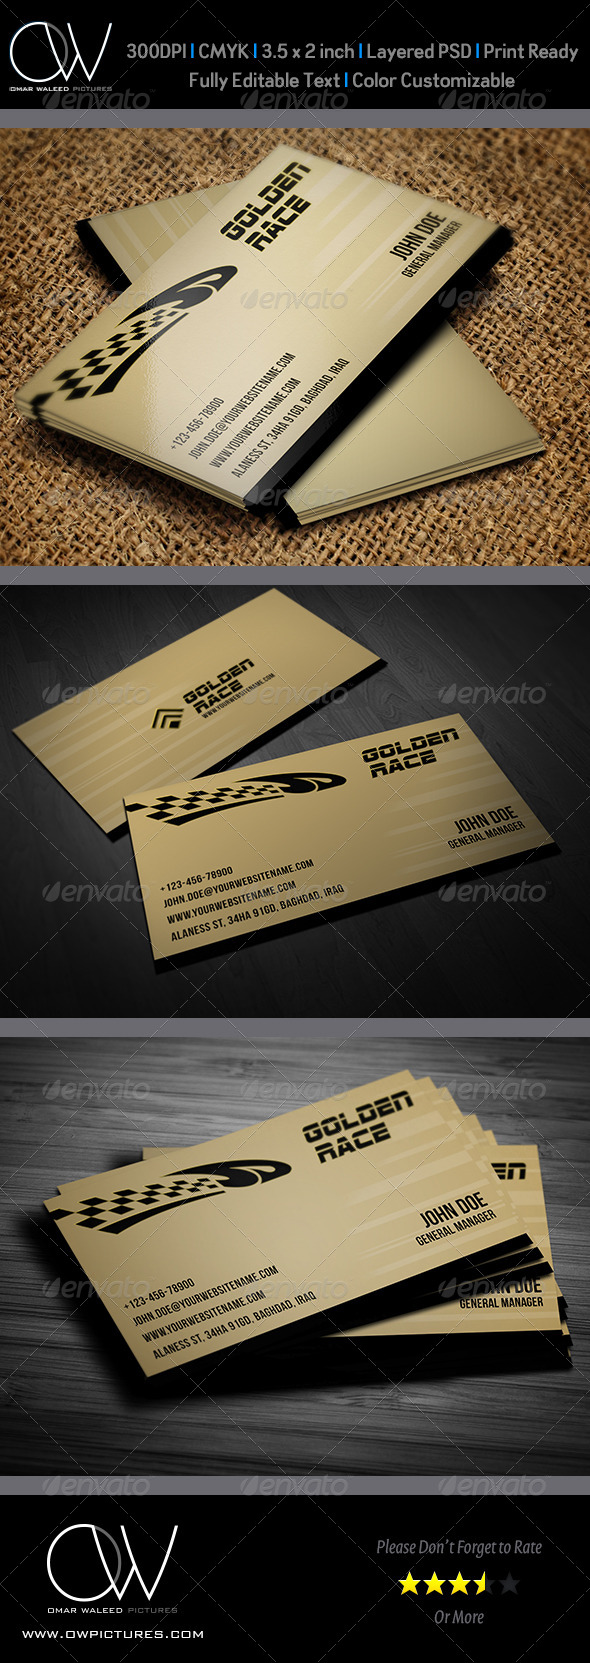 Sport race business card template by owpictures graphicriver sport race business card template creative business cards reheart Gallery